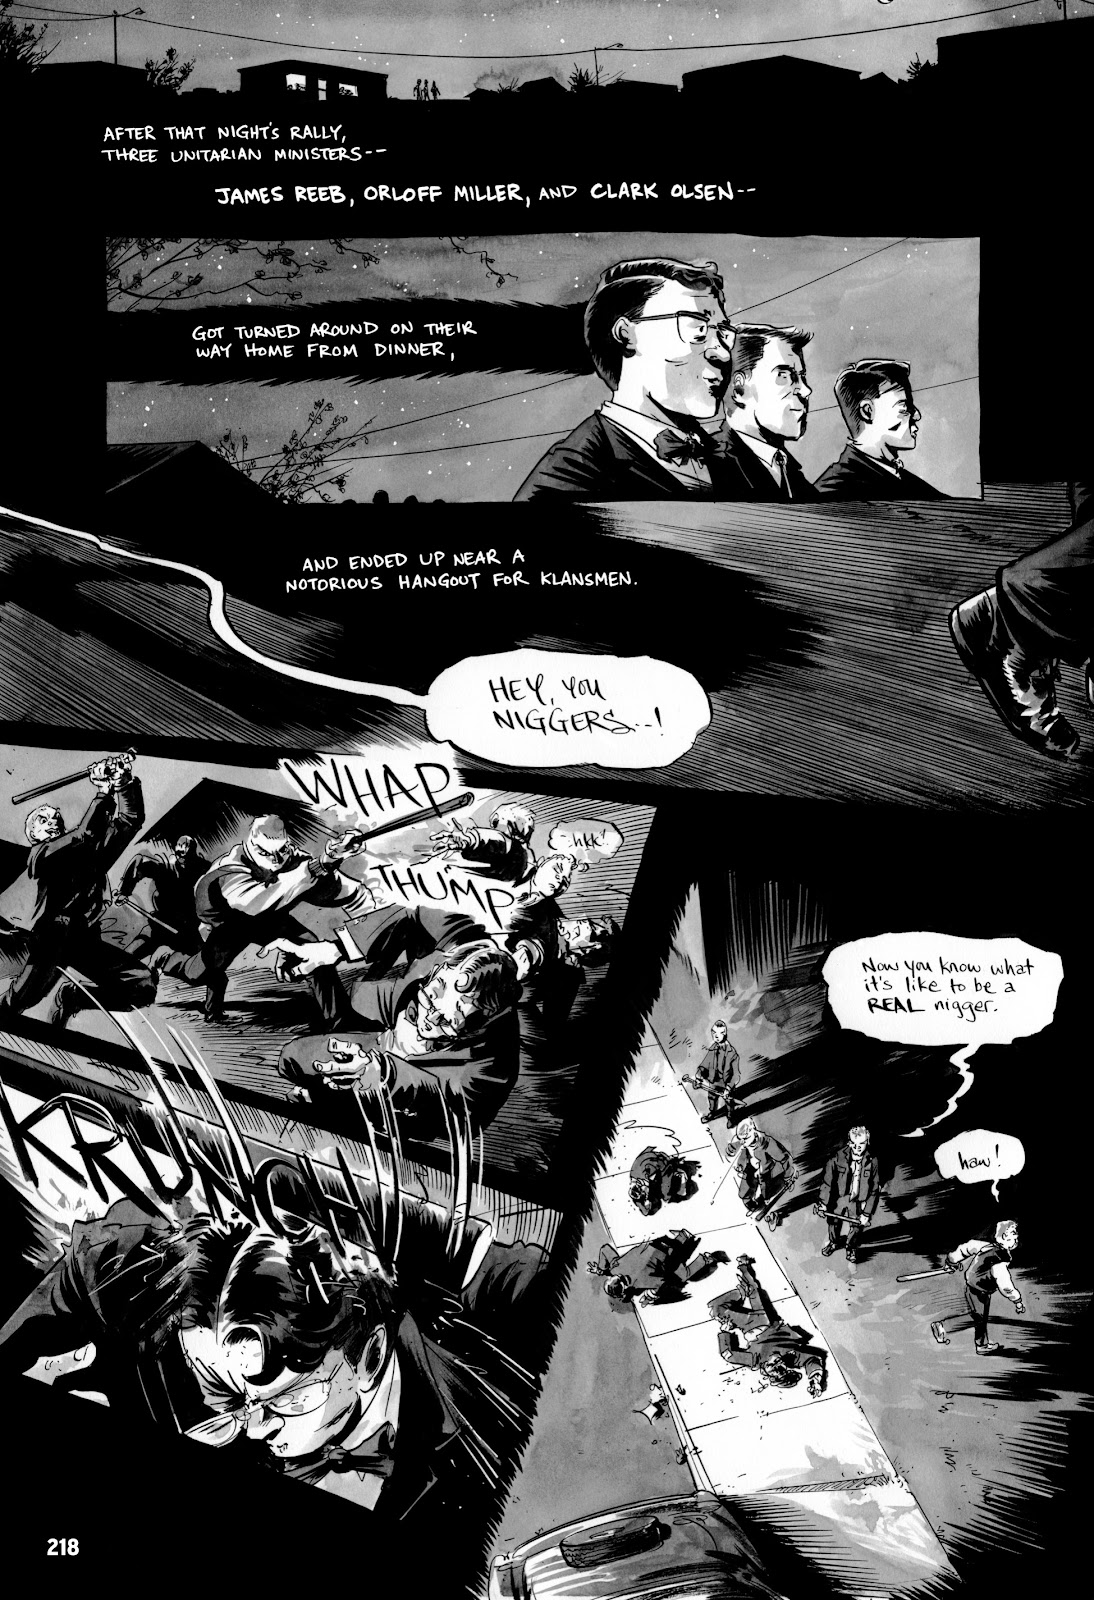 March 3 Page 212